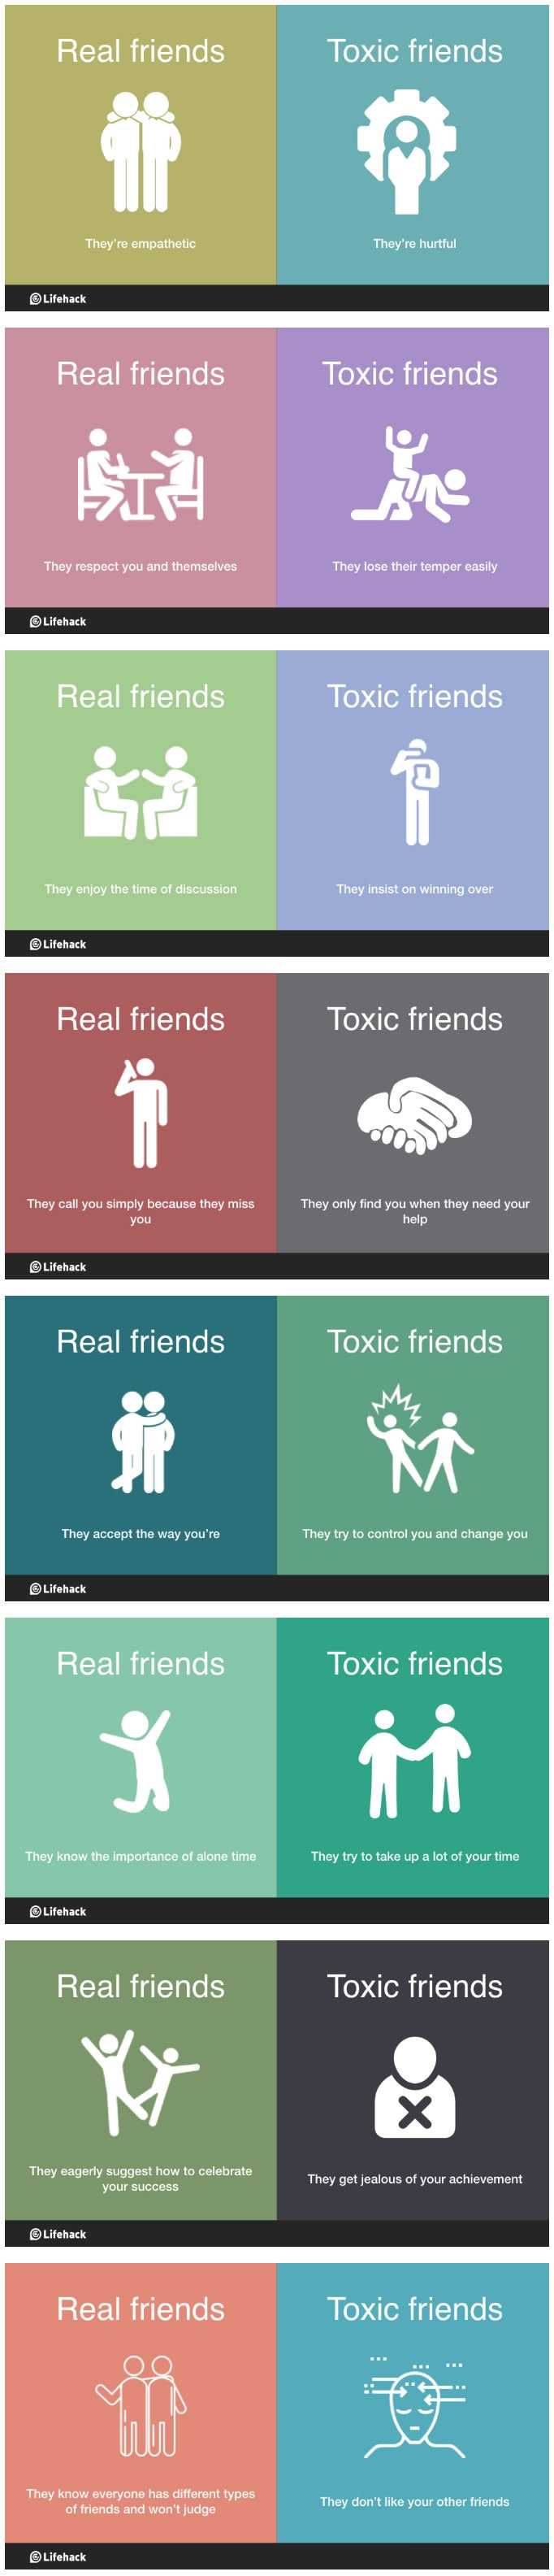 Real friends vs toxic friends